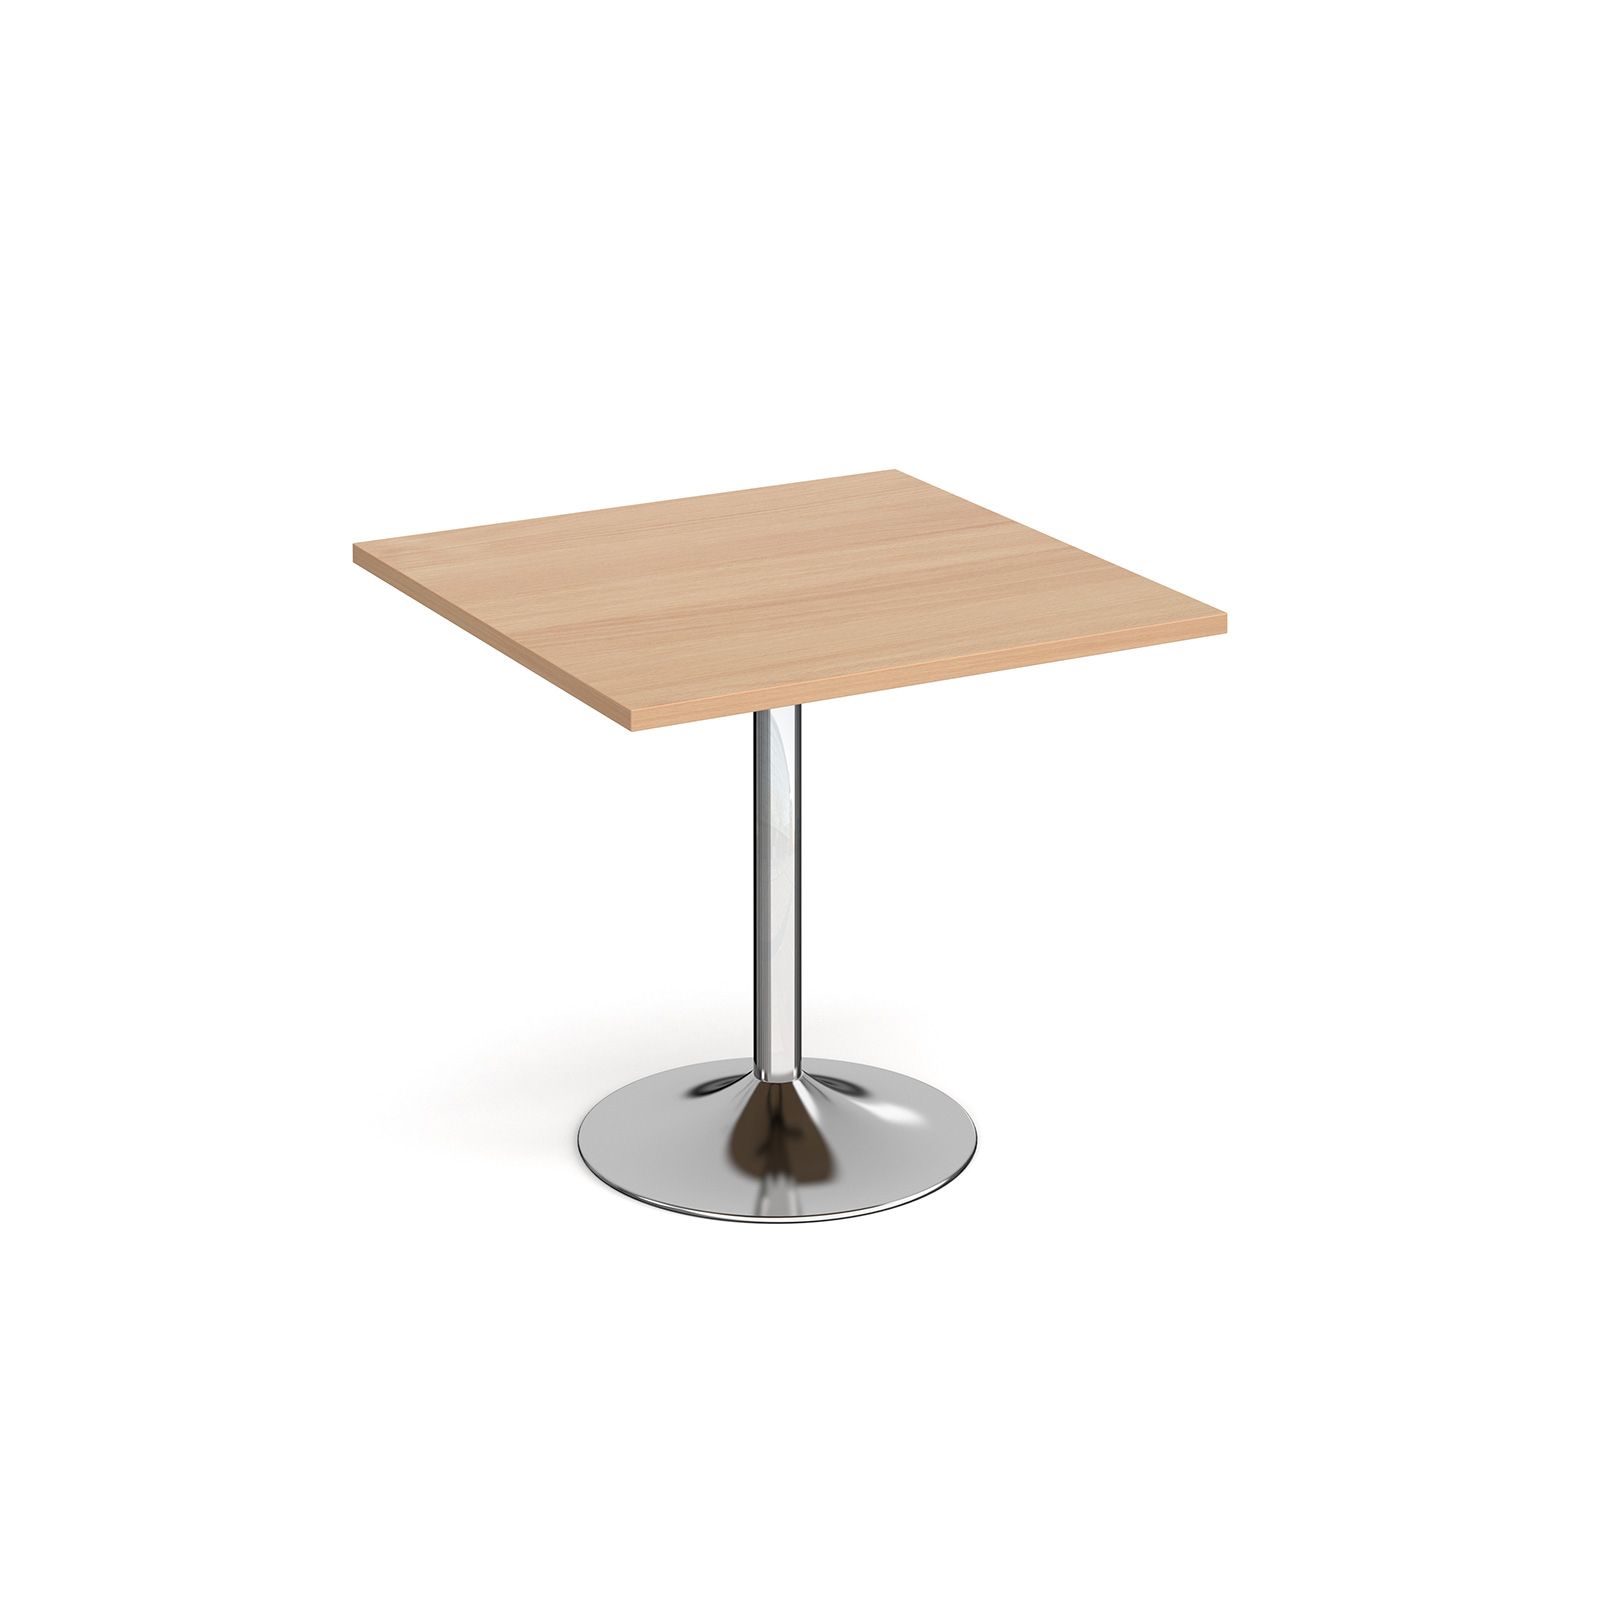 Genoa square dining table with trumpet base